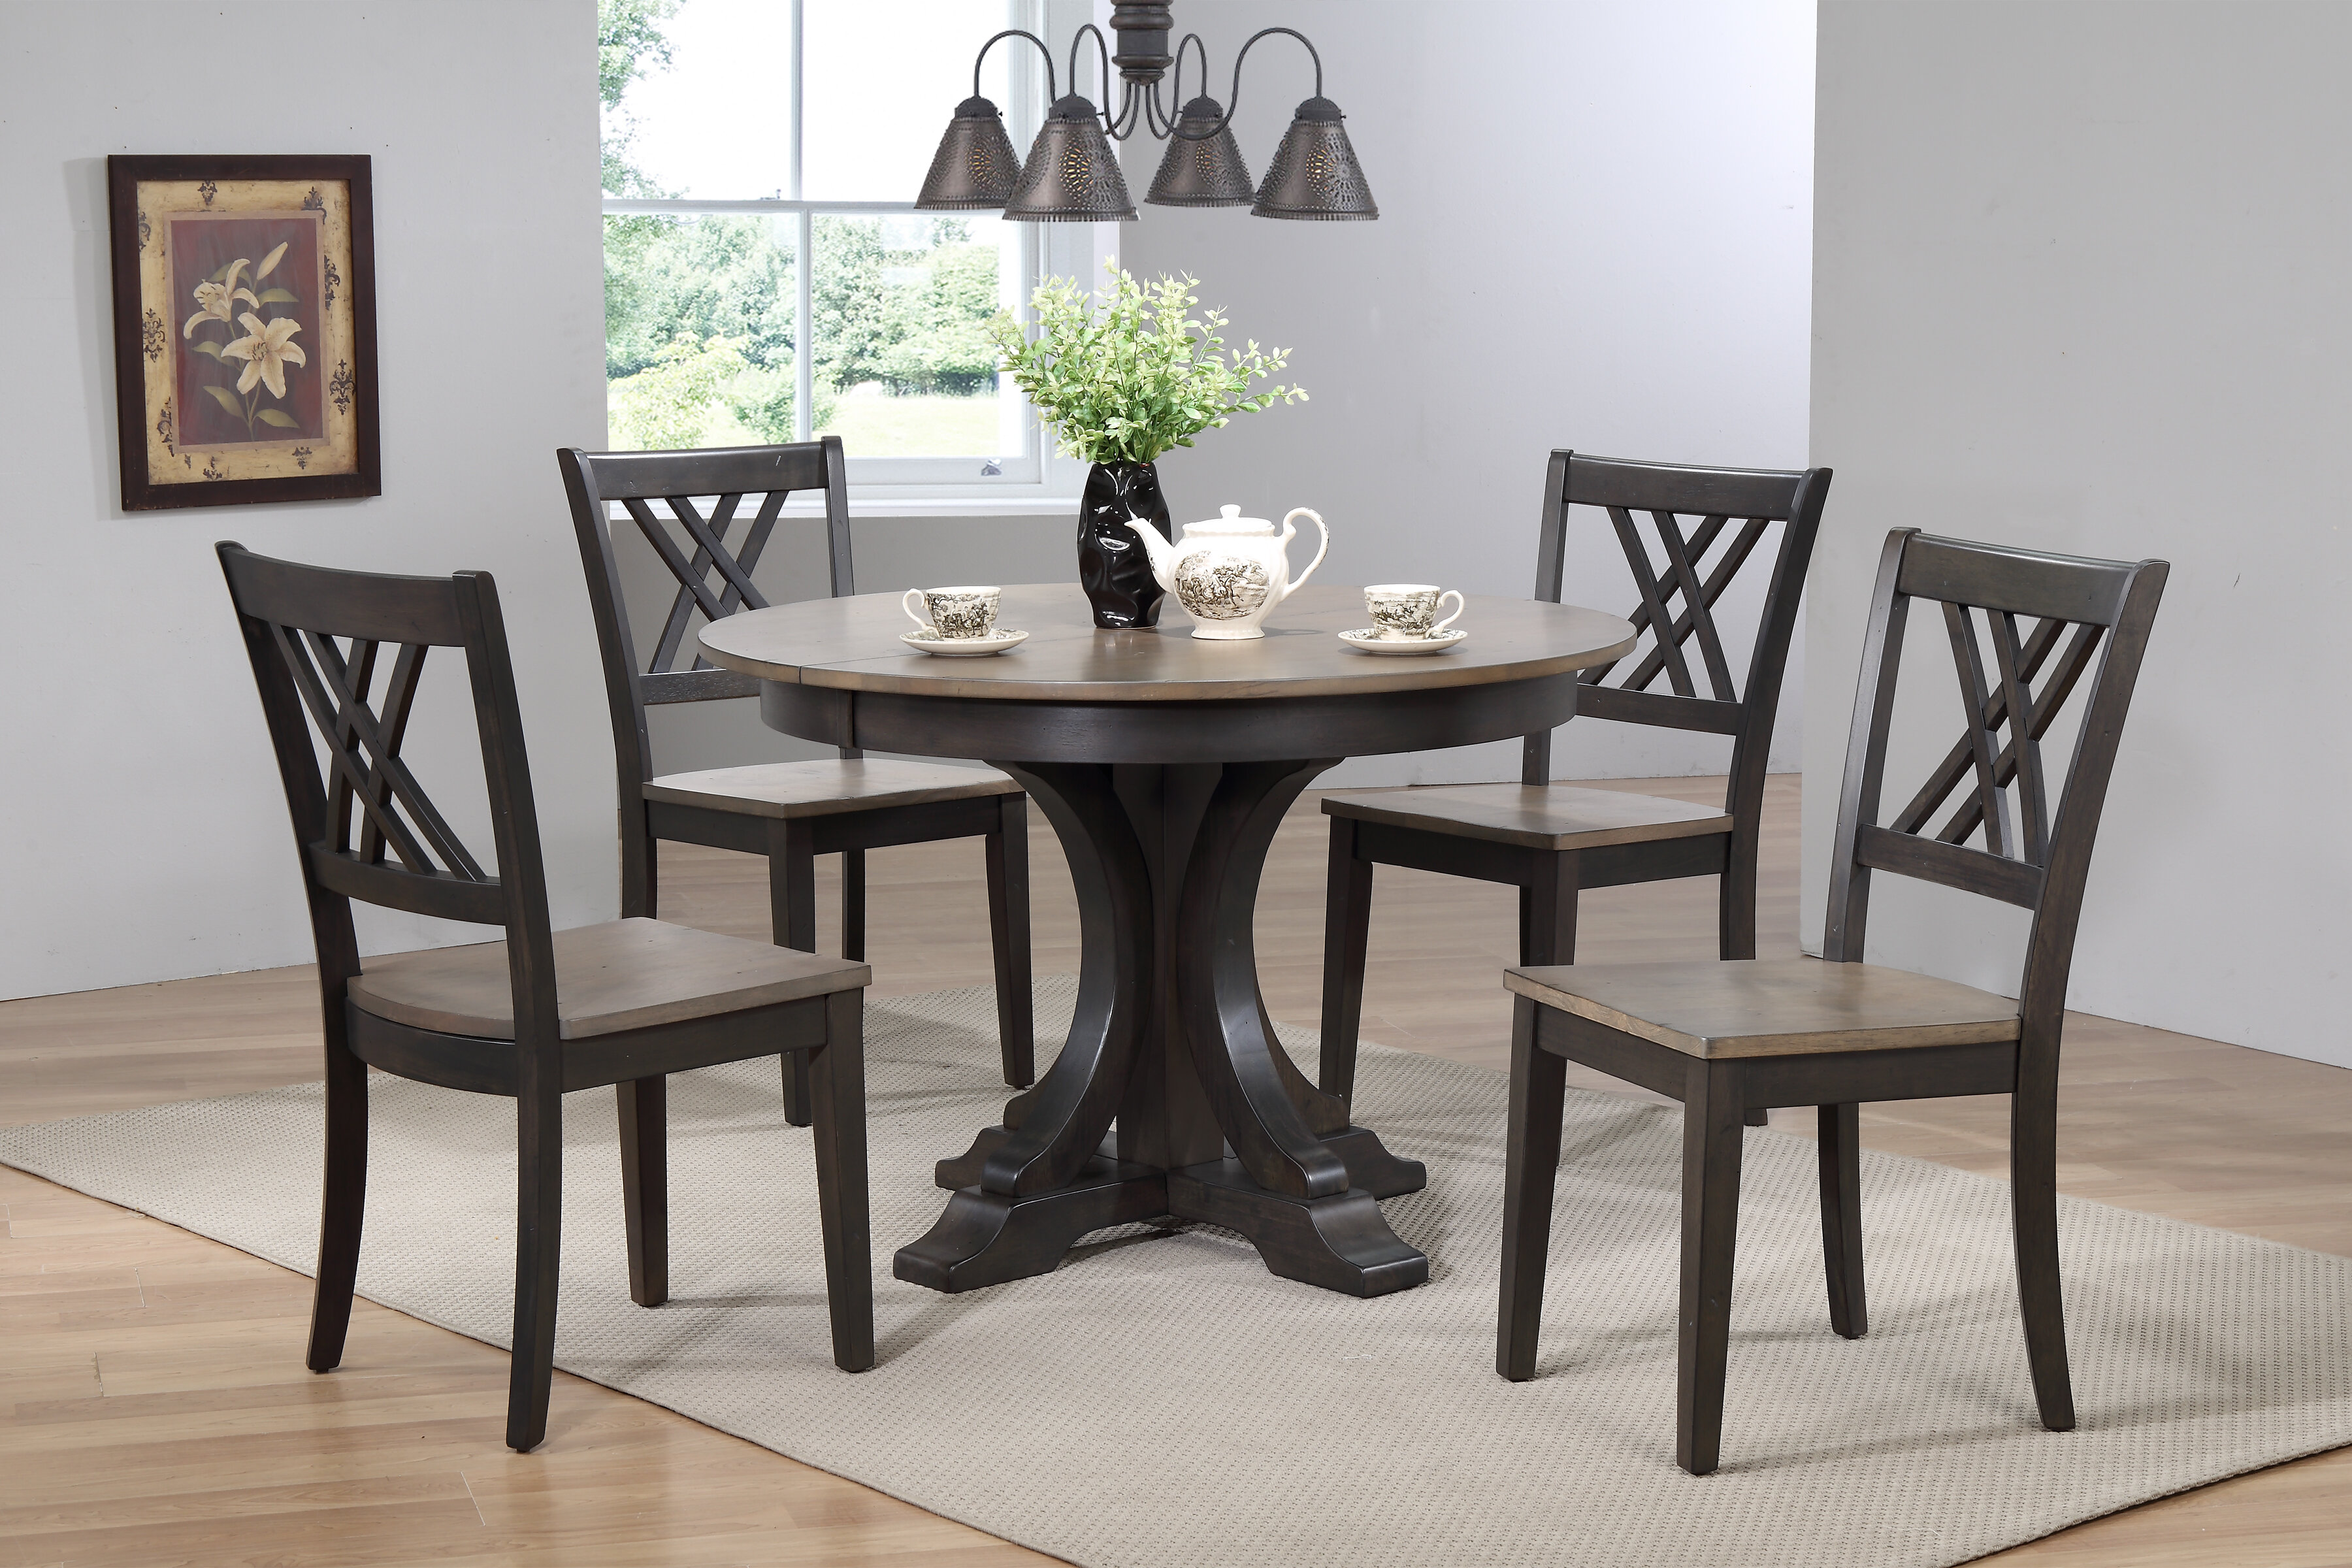 Grey Round Kitchen Dining Room Sets Tables You Ll Love In 2021 Wayfair